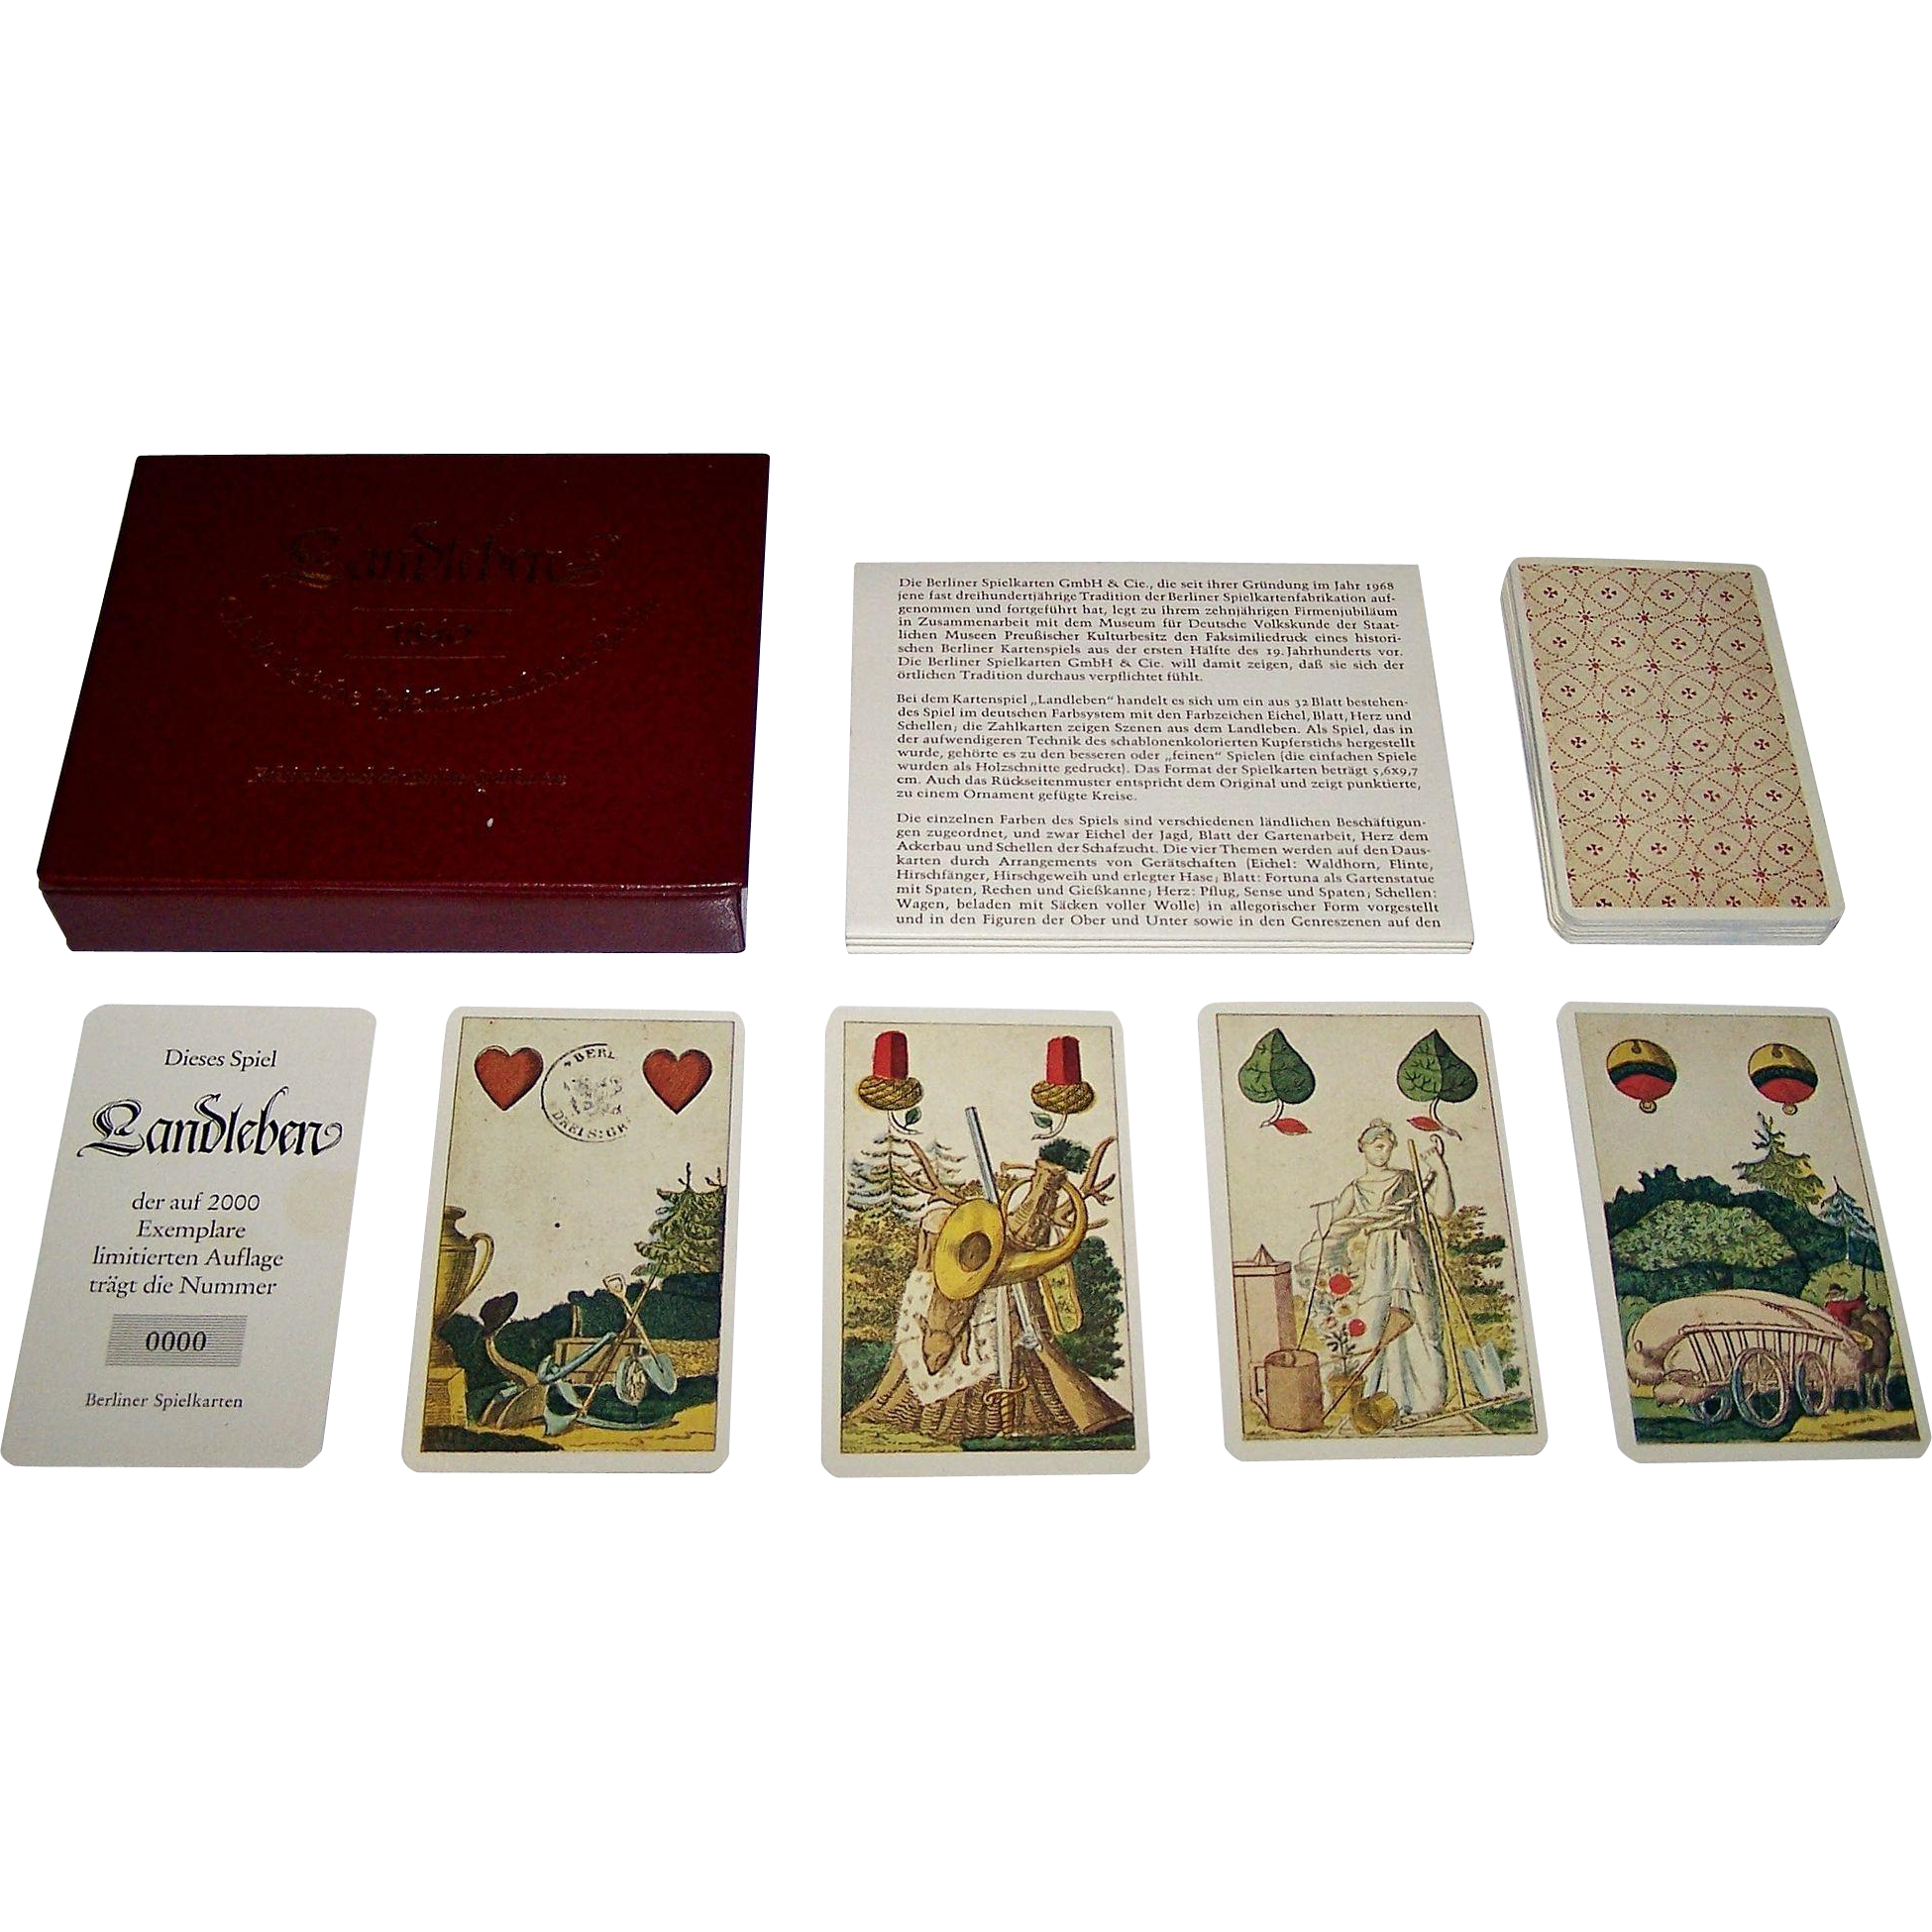 "Berlin Spielkarten Fabrik ""Landleben"" (""Country Life"") Skat Playing Cards, Reprint of Christian August Muller (1835), Ltd. Ed. 0000/2000, 1978"